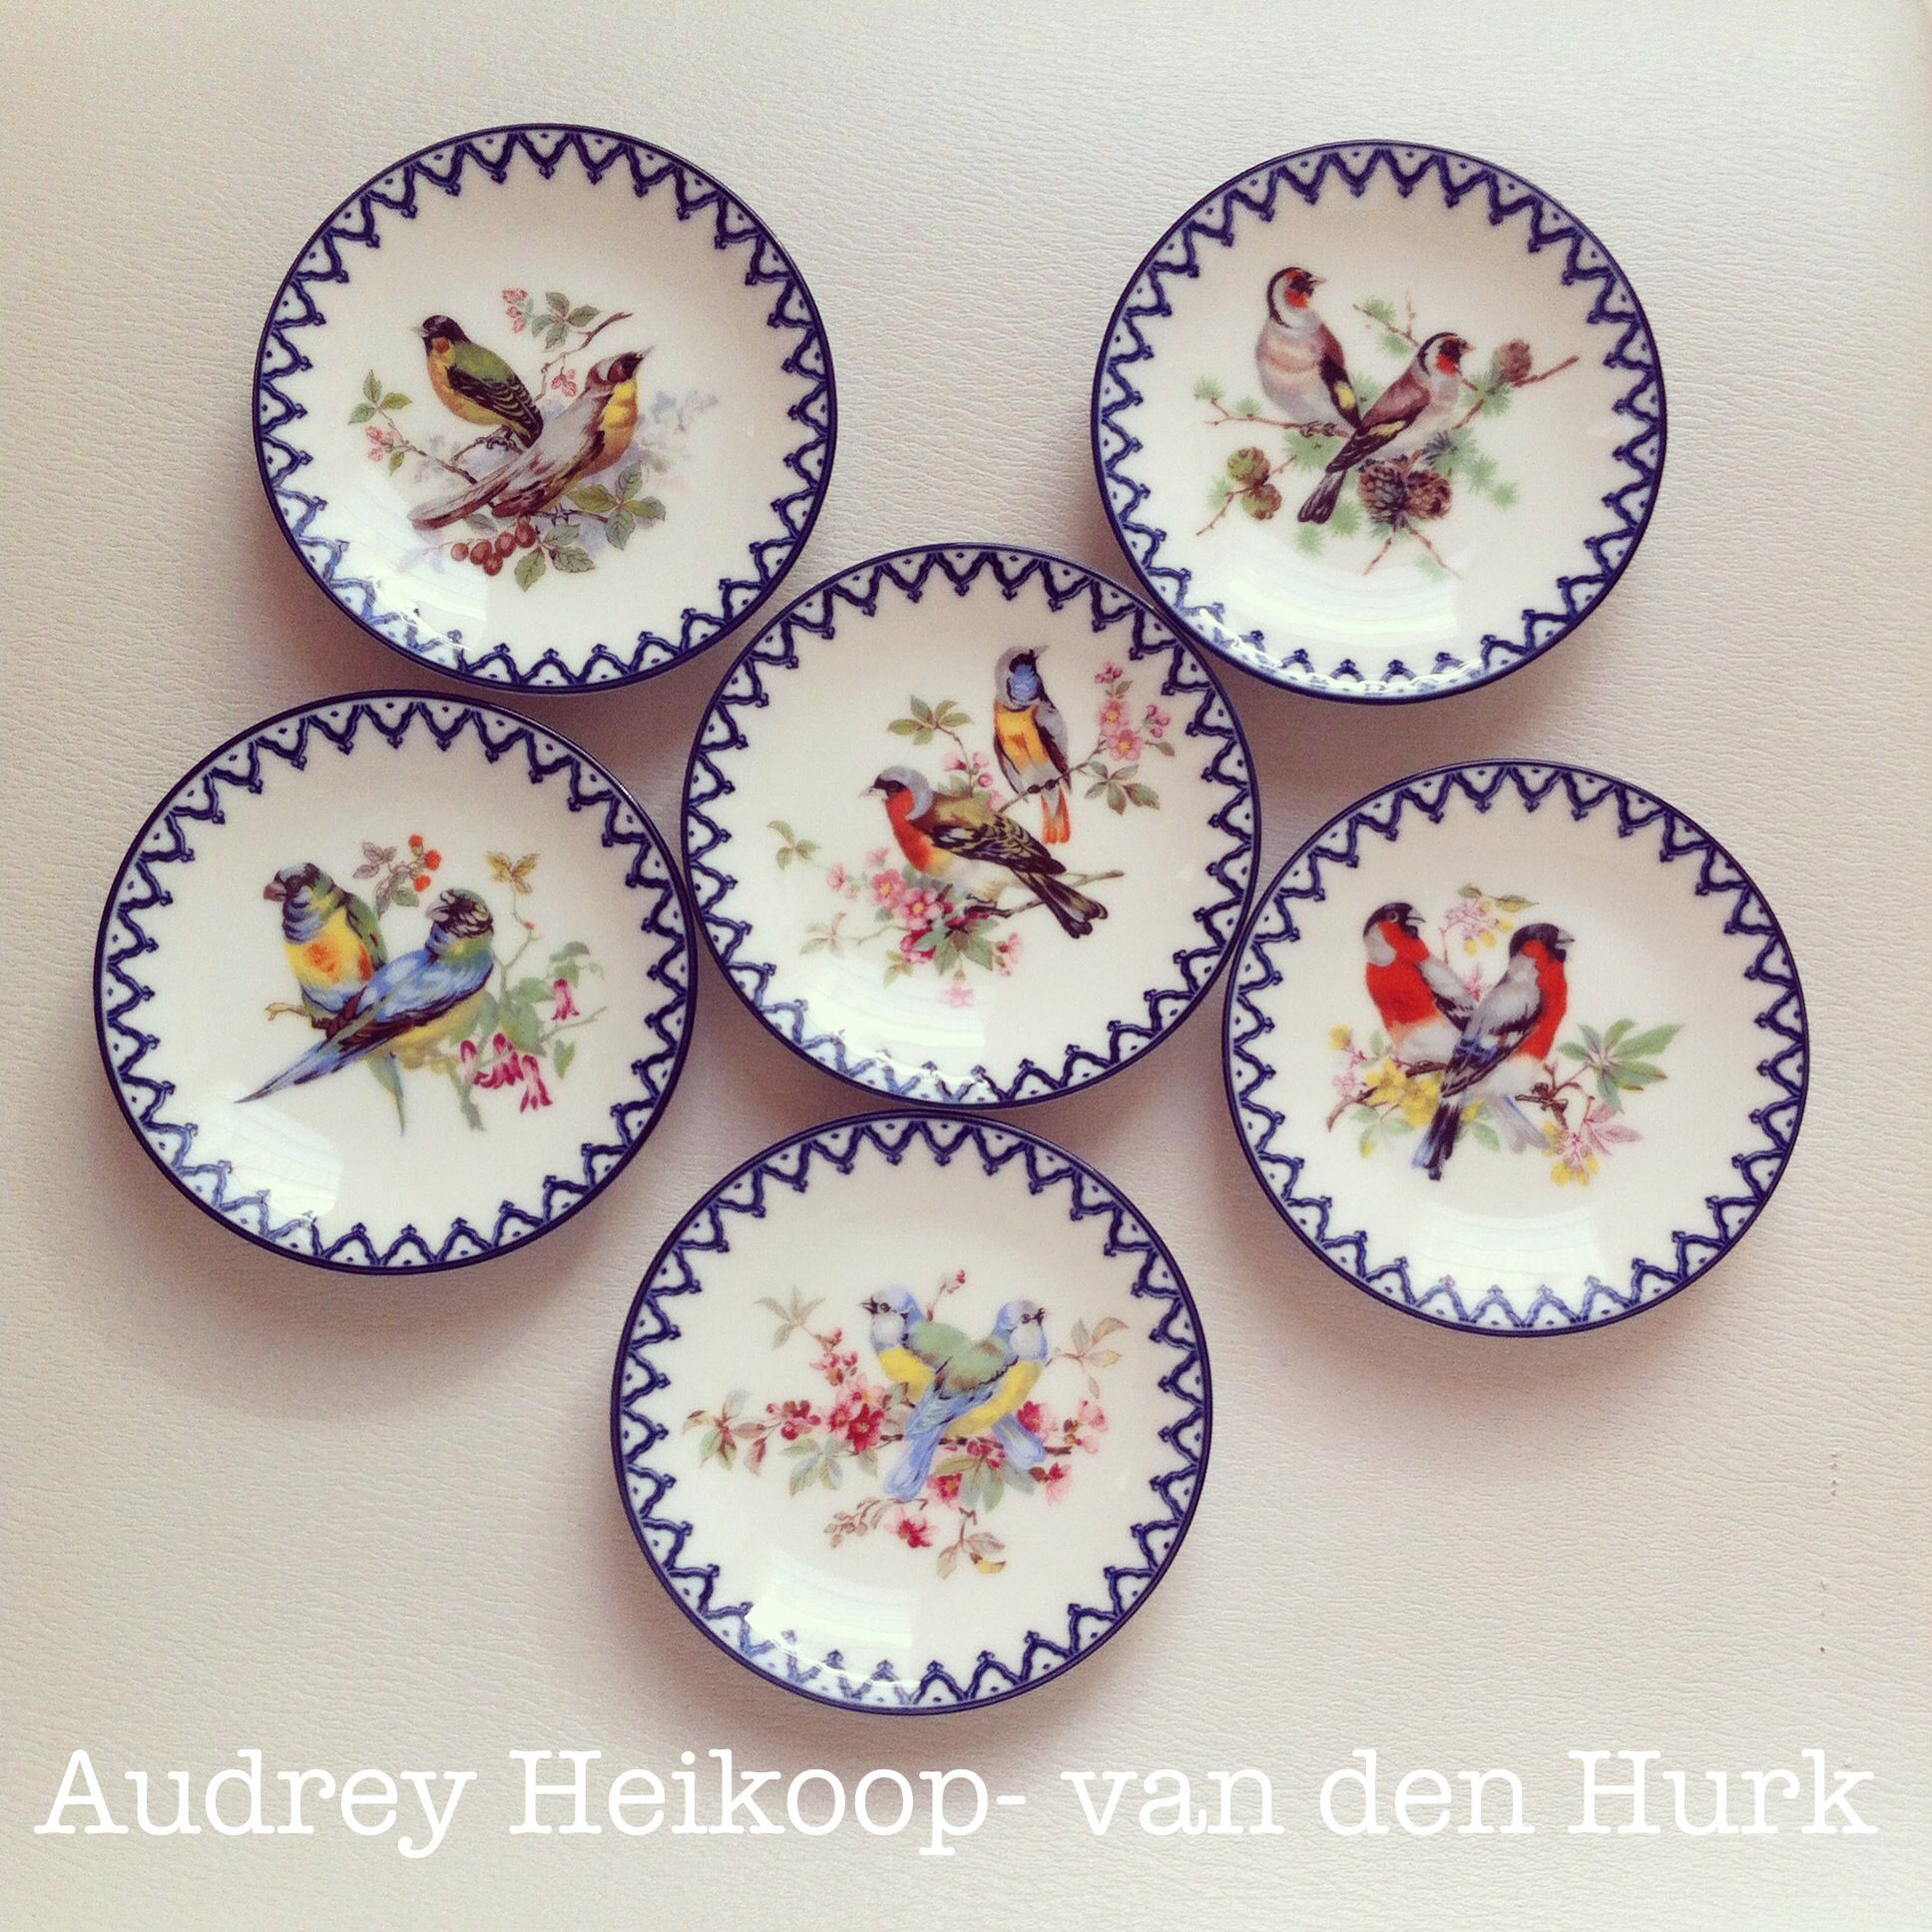 My lovely little plates.. #birds #flowers # petitfours